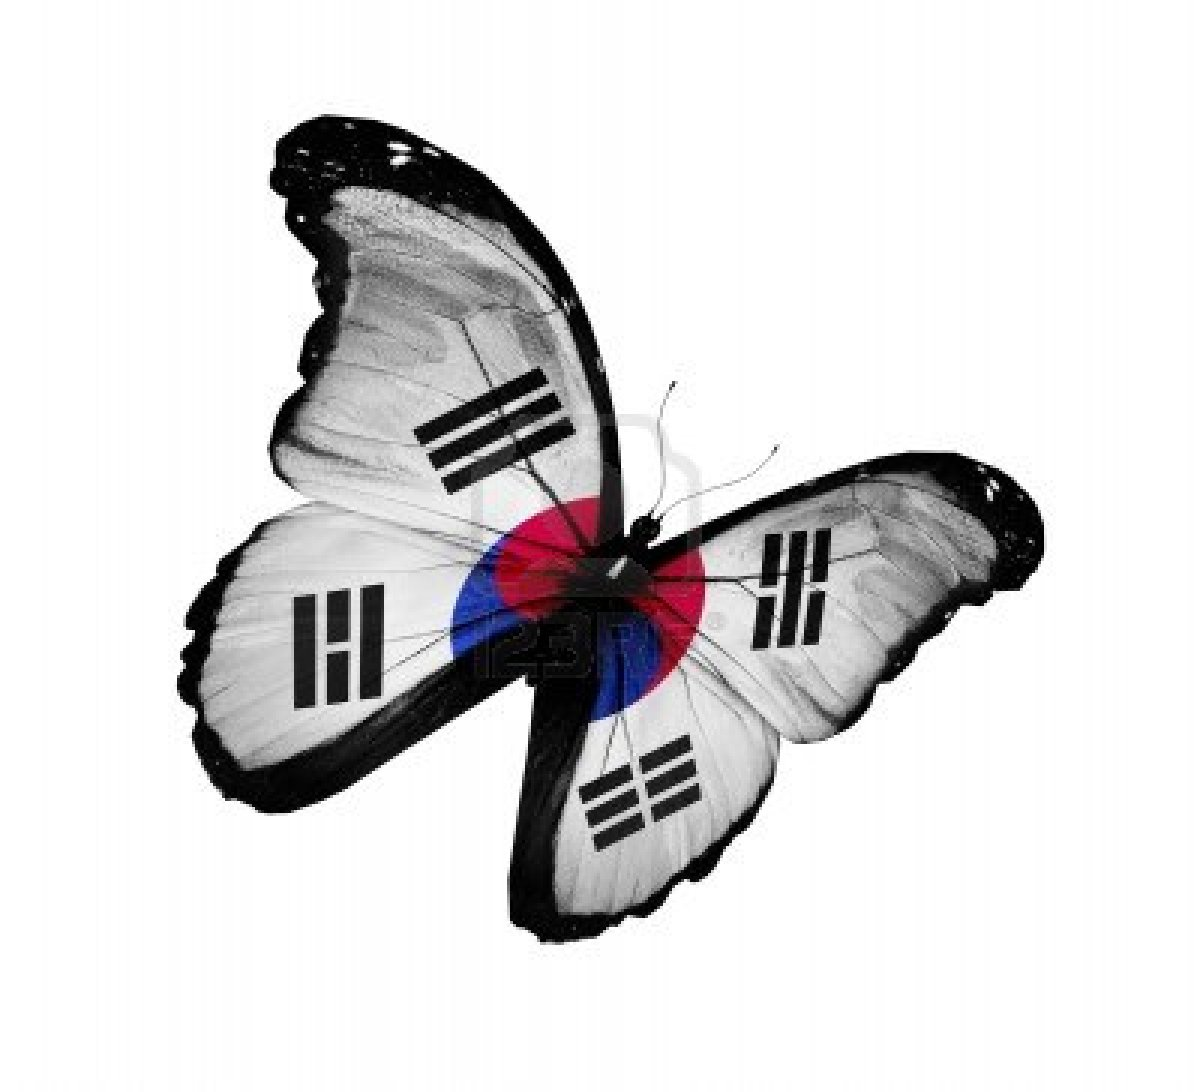 14491021-south-korea-flag-butterfly-flying-isolated-on-white-background.jpg